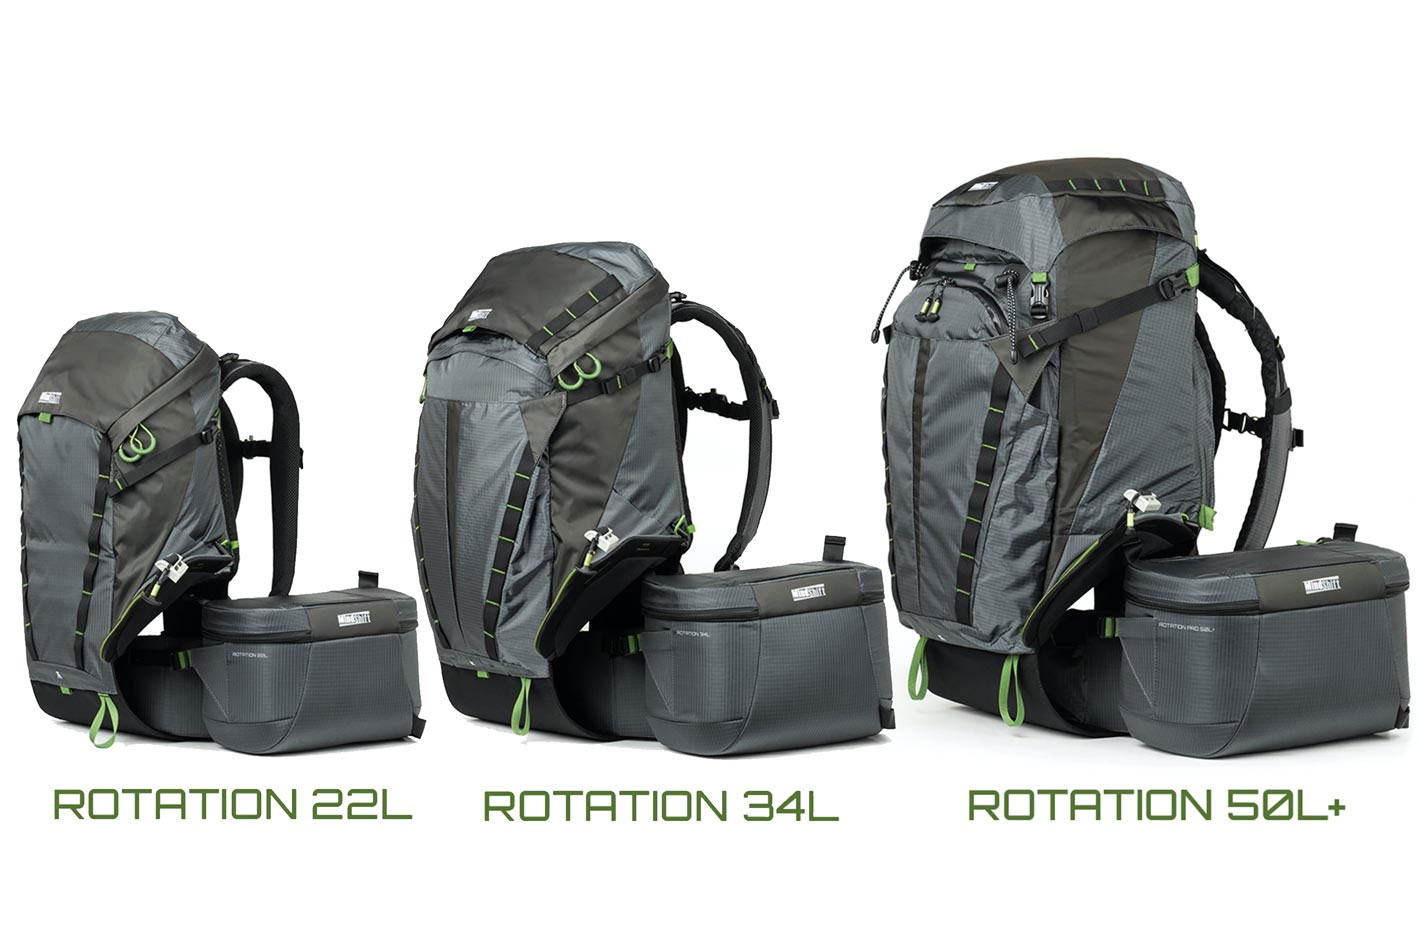 Rotation 180 backpacks: the new series is now available